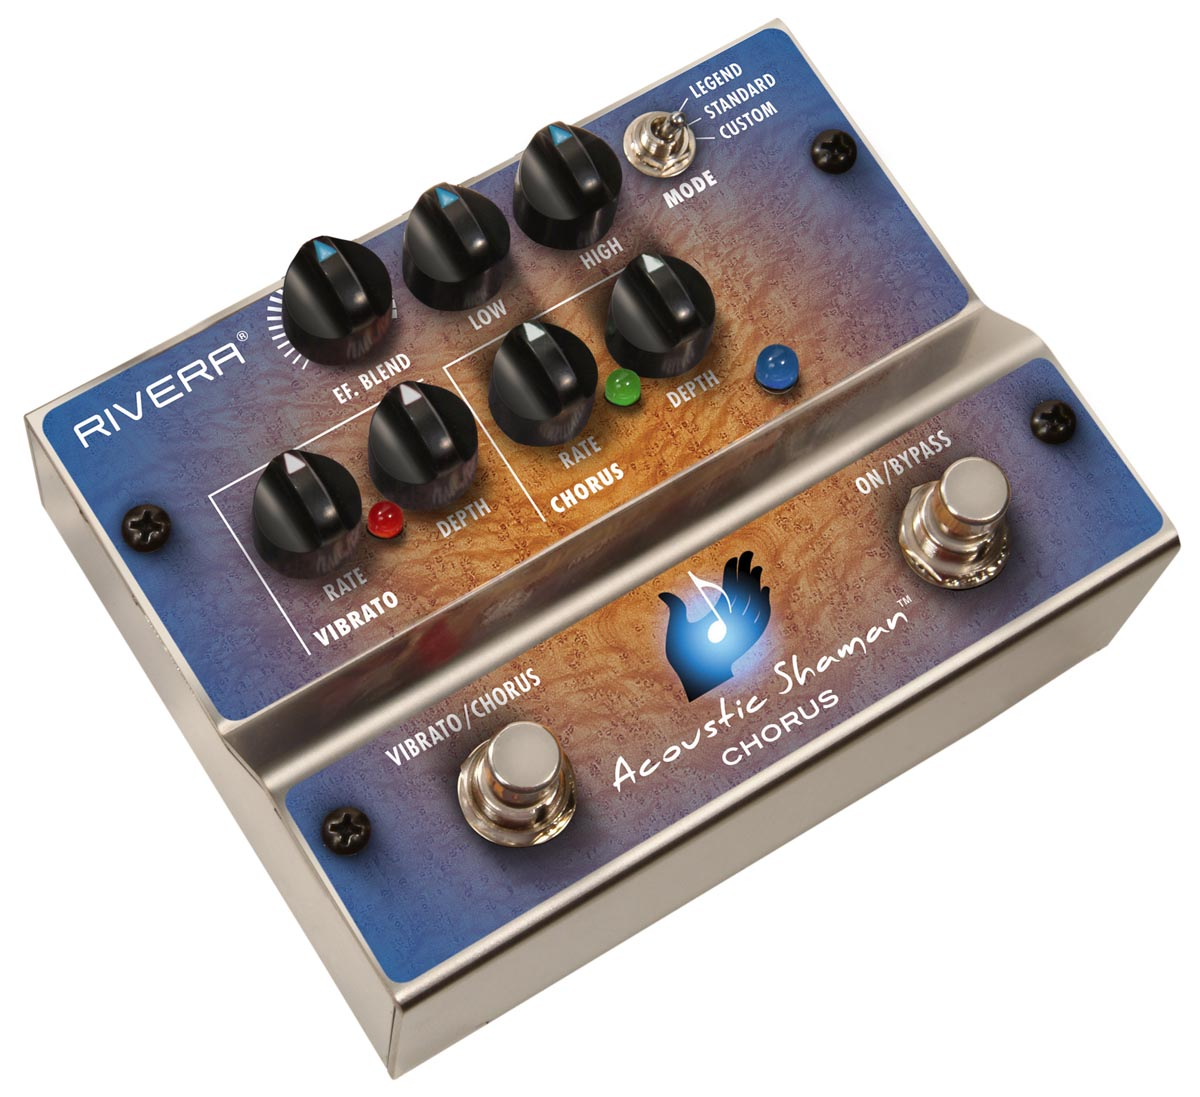 Best Guitar Pedals For Acoustic : acoustic shaman chorus rivera amplification ~ Vivirlamusica.com Haus und Dekorationen